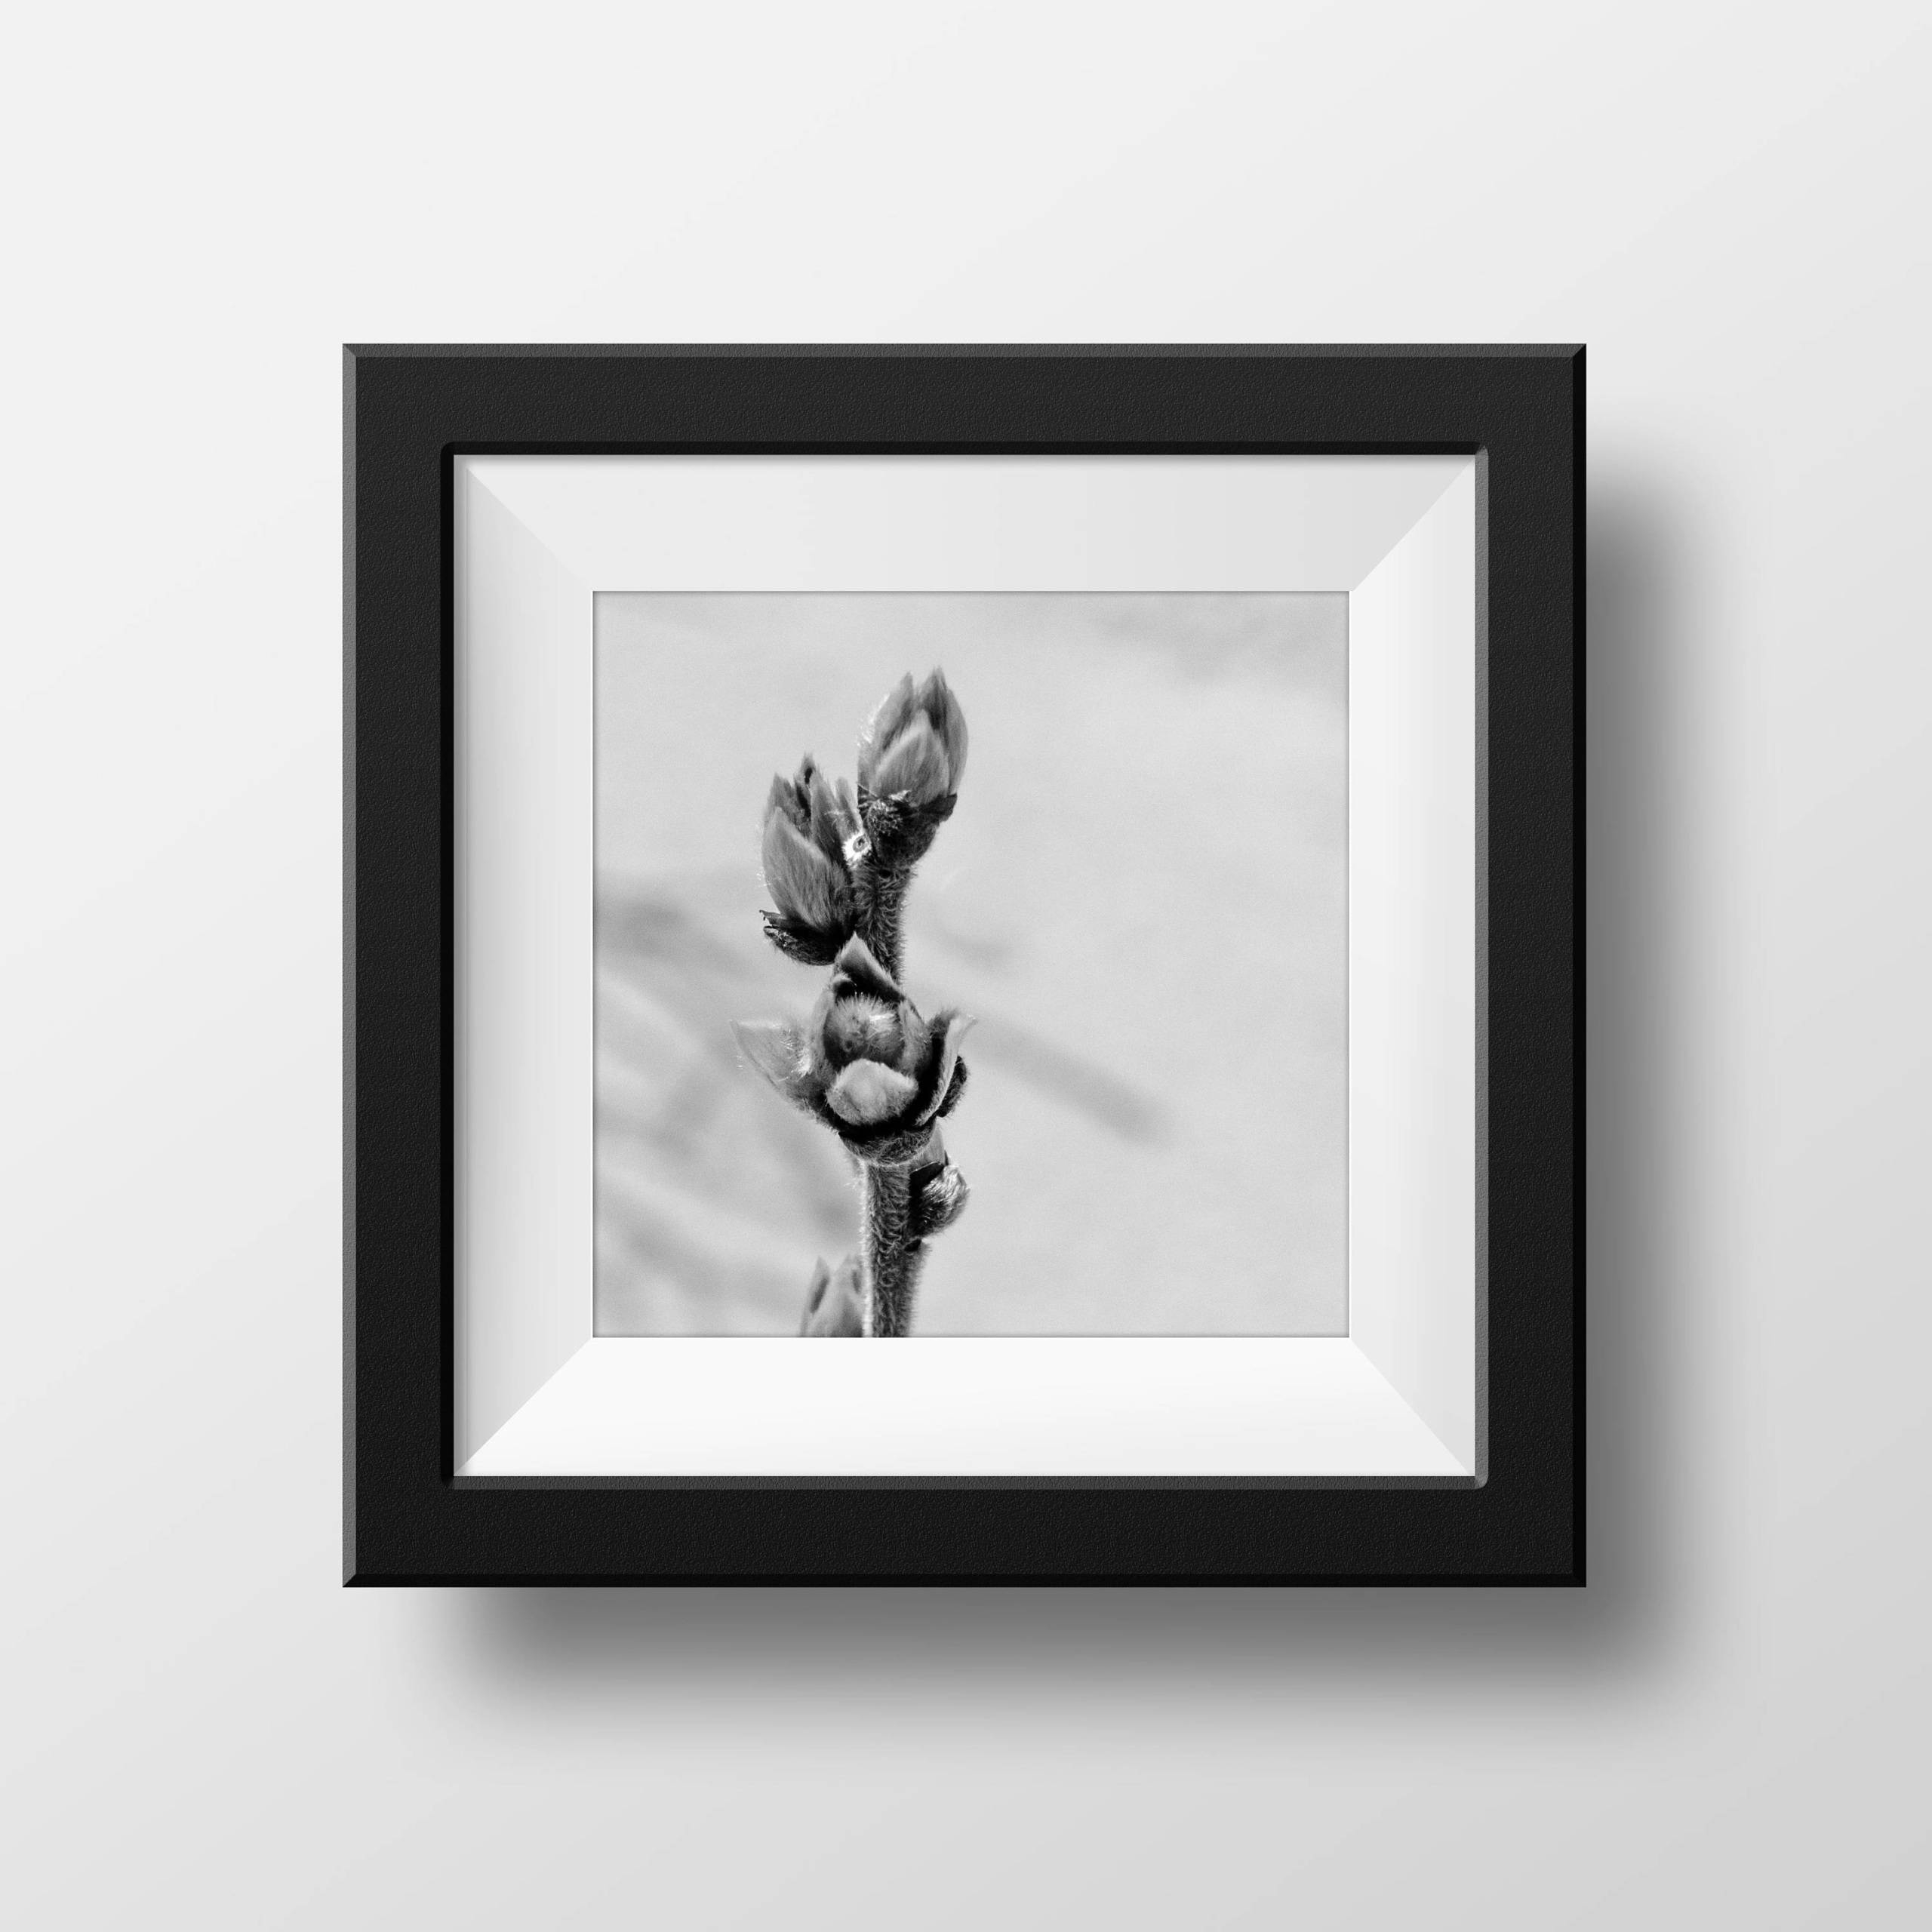 Square Garden Bud Metal Wall Art Print, Black And White Botanical Within Most Up To Date Botanical Metal Wall Art (View 12 of 25)